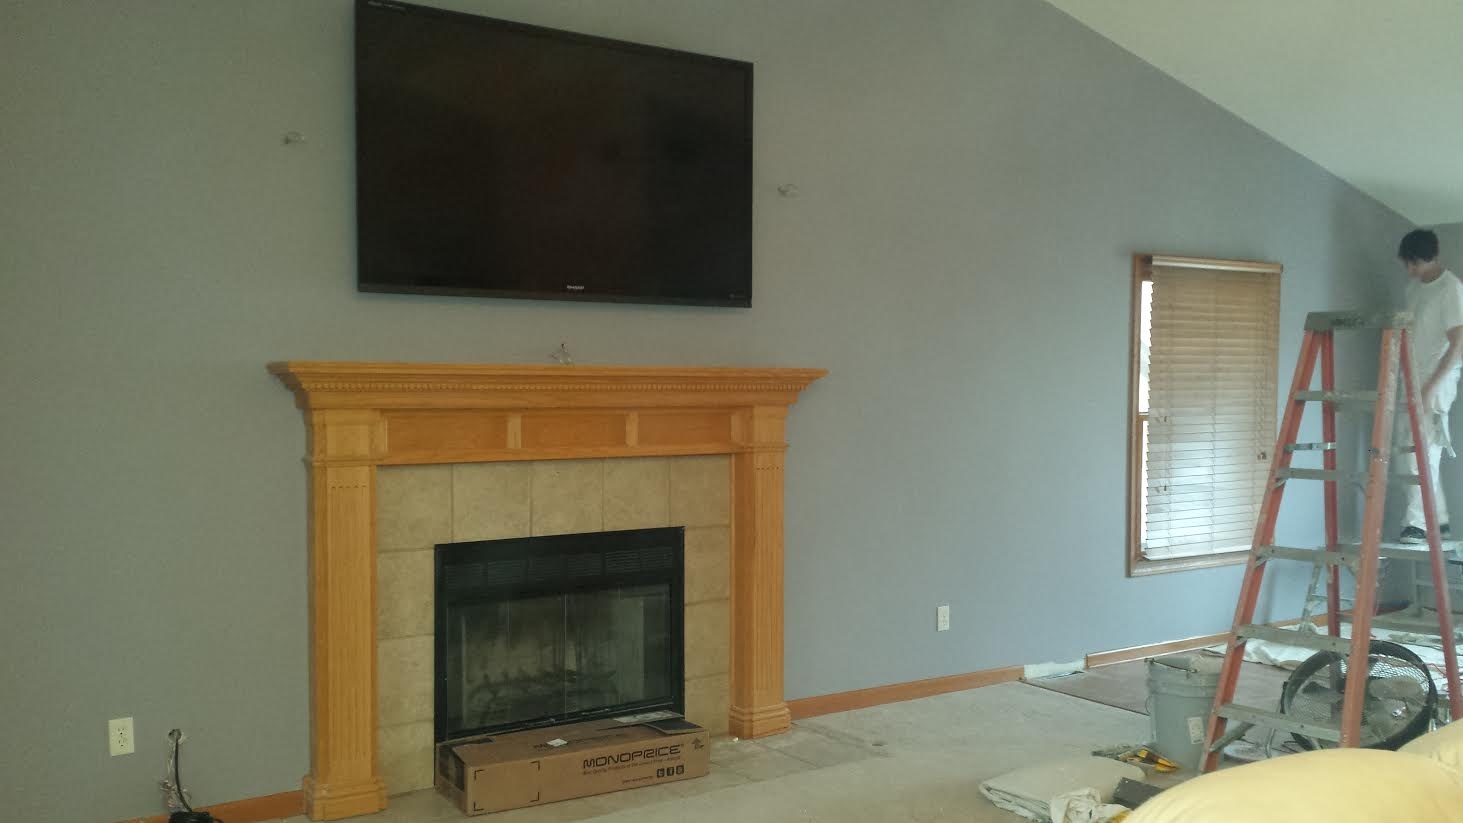 Tv Installation Over Fireplace Sandwich Il Drywall